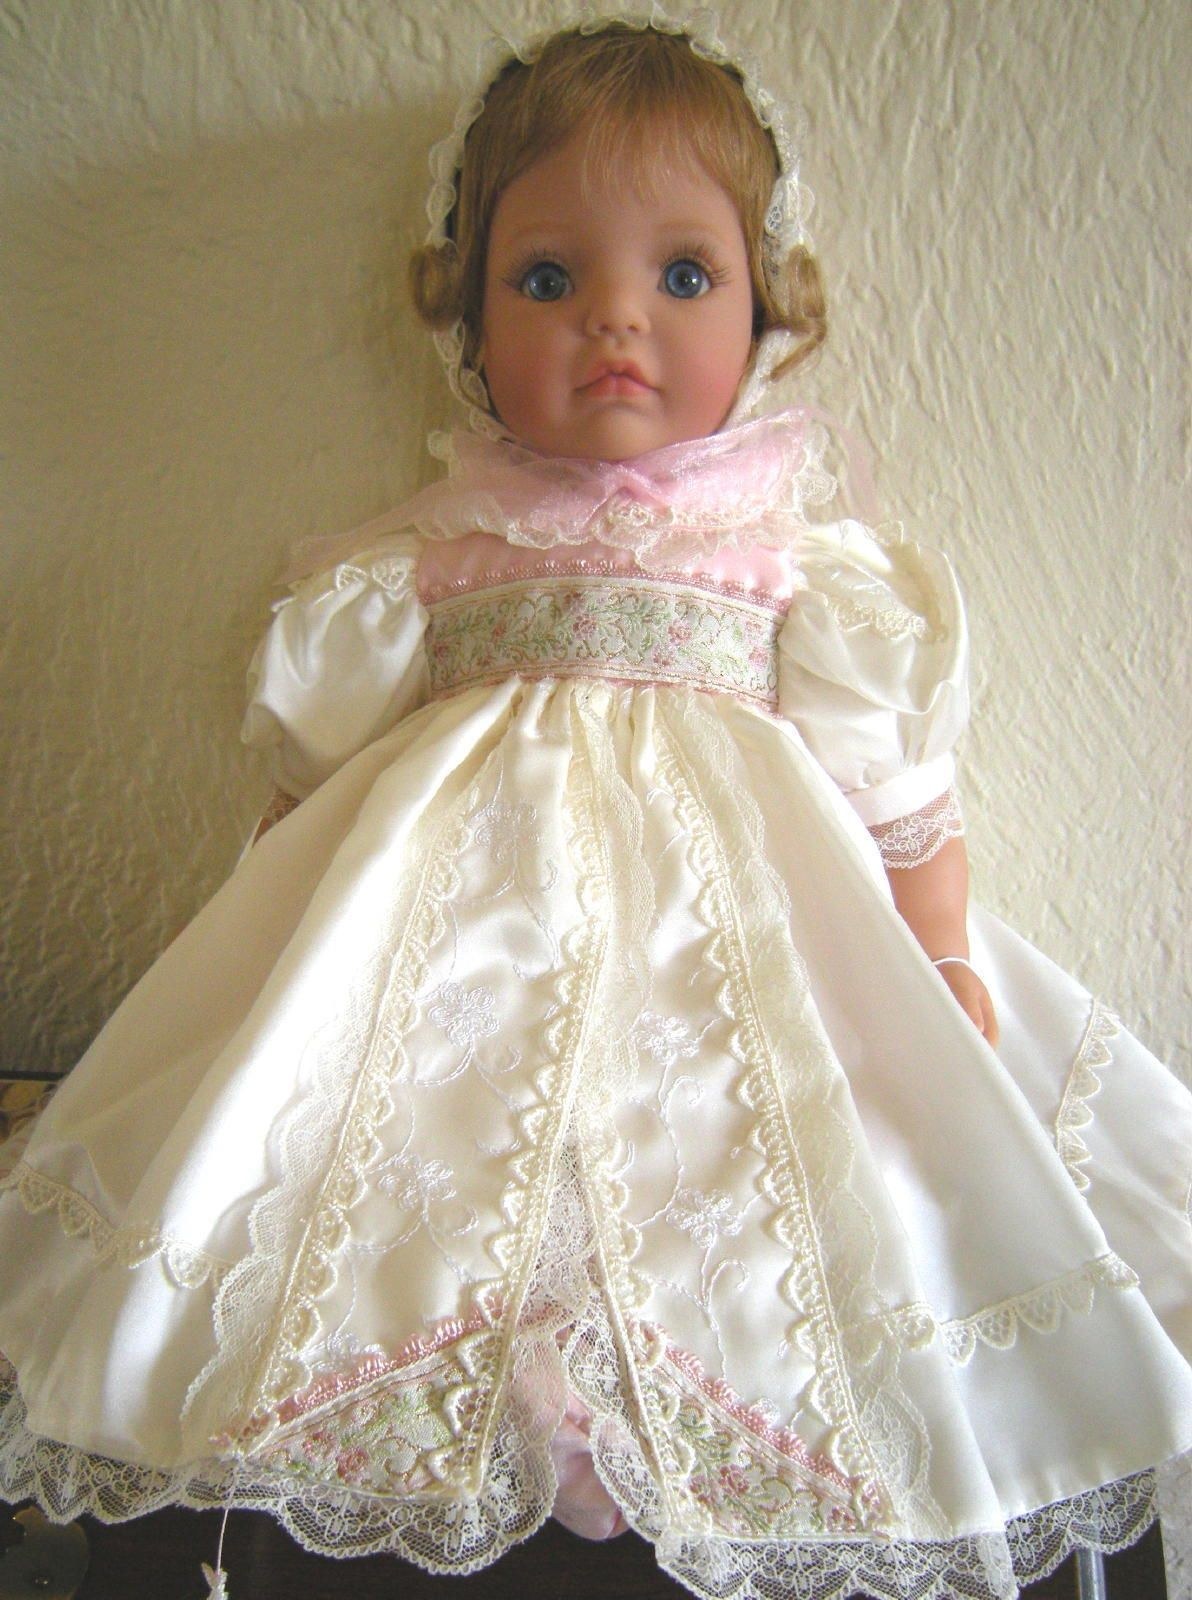 """Memories"" By, Susan Wakeen - Part of the Signature Series - Top of the line toddler/baby dolls - She is soft vinyl and VERY RARE! Her dress over her cute baby pants and booties :)"